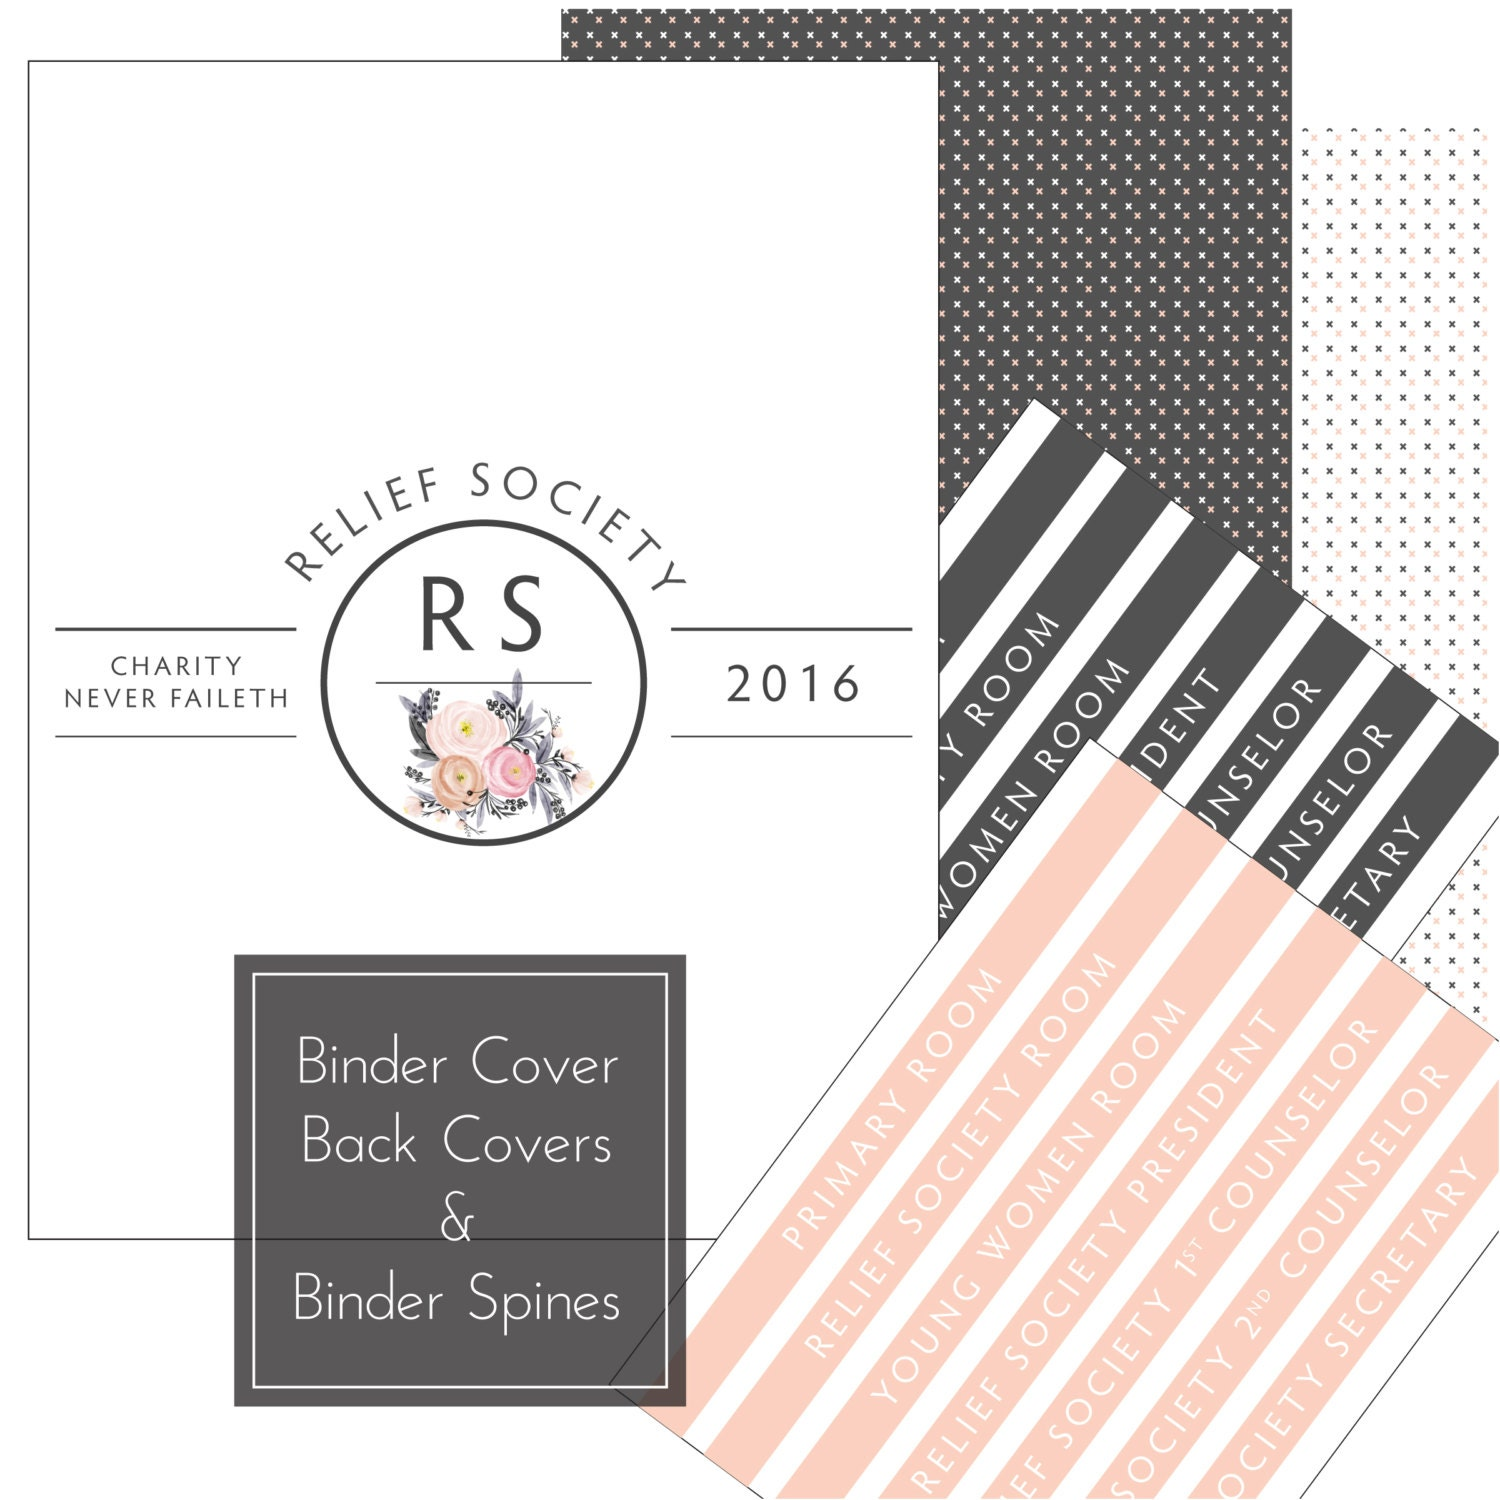 relief society presidency kit  binder covers by